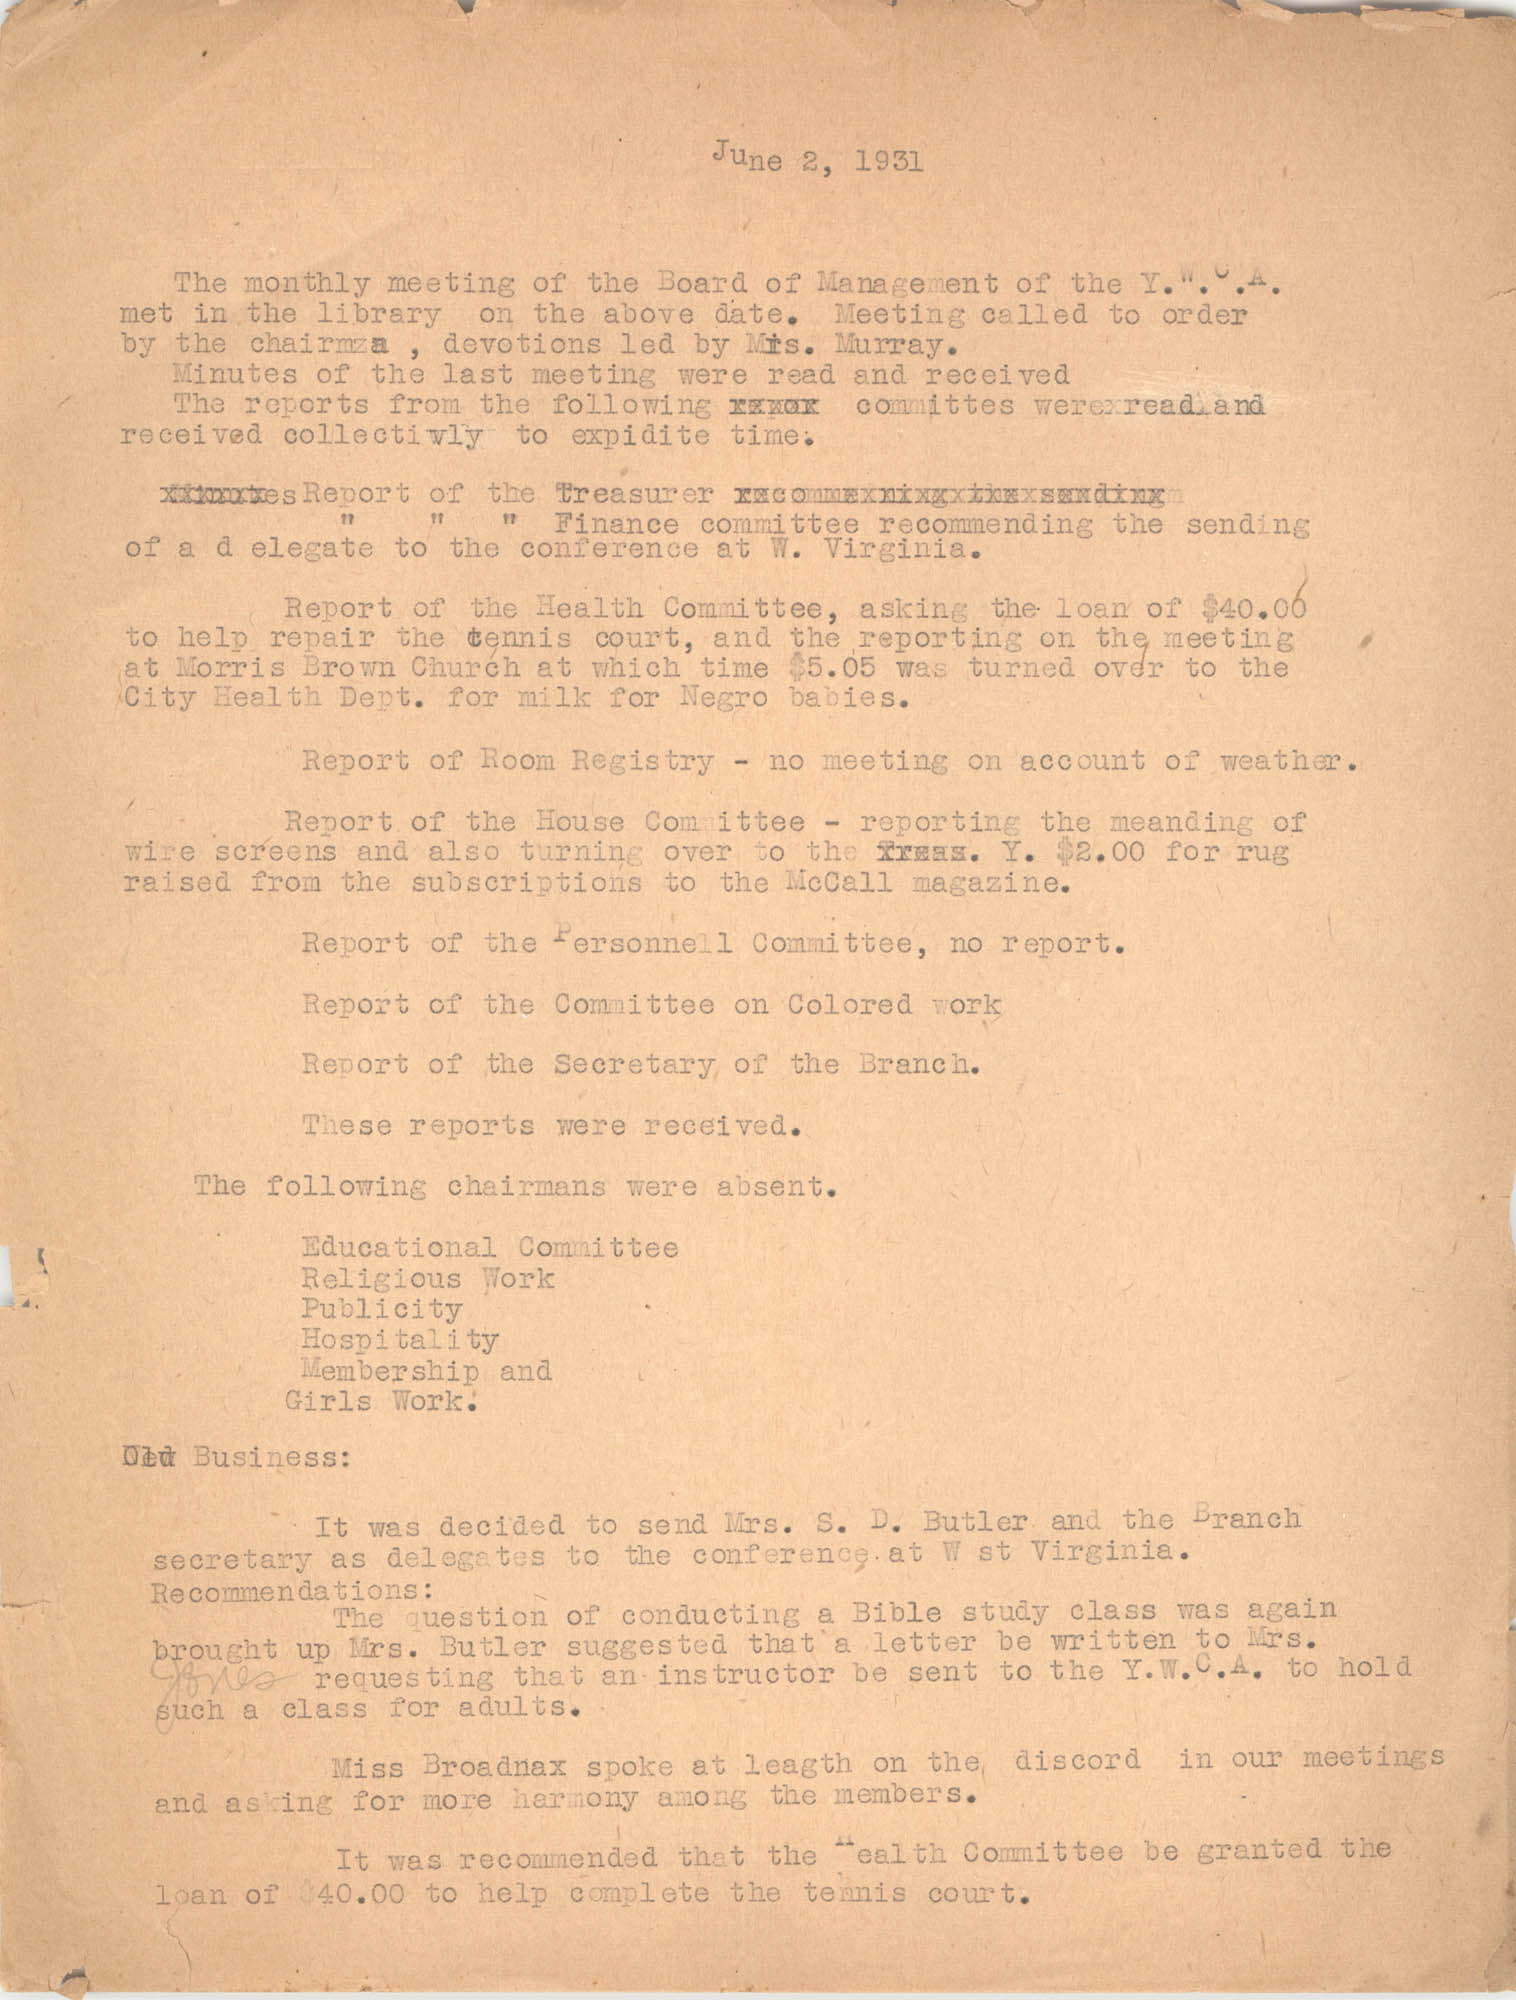 Minutes to the Board of Management, Coming Street Y.W.C.A., June 2, 1931